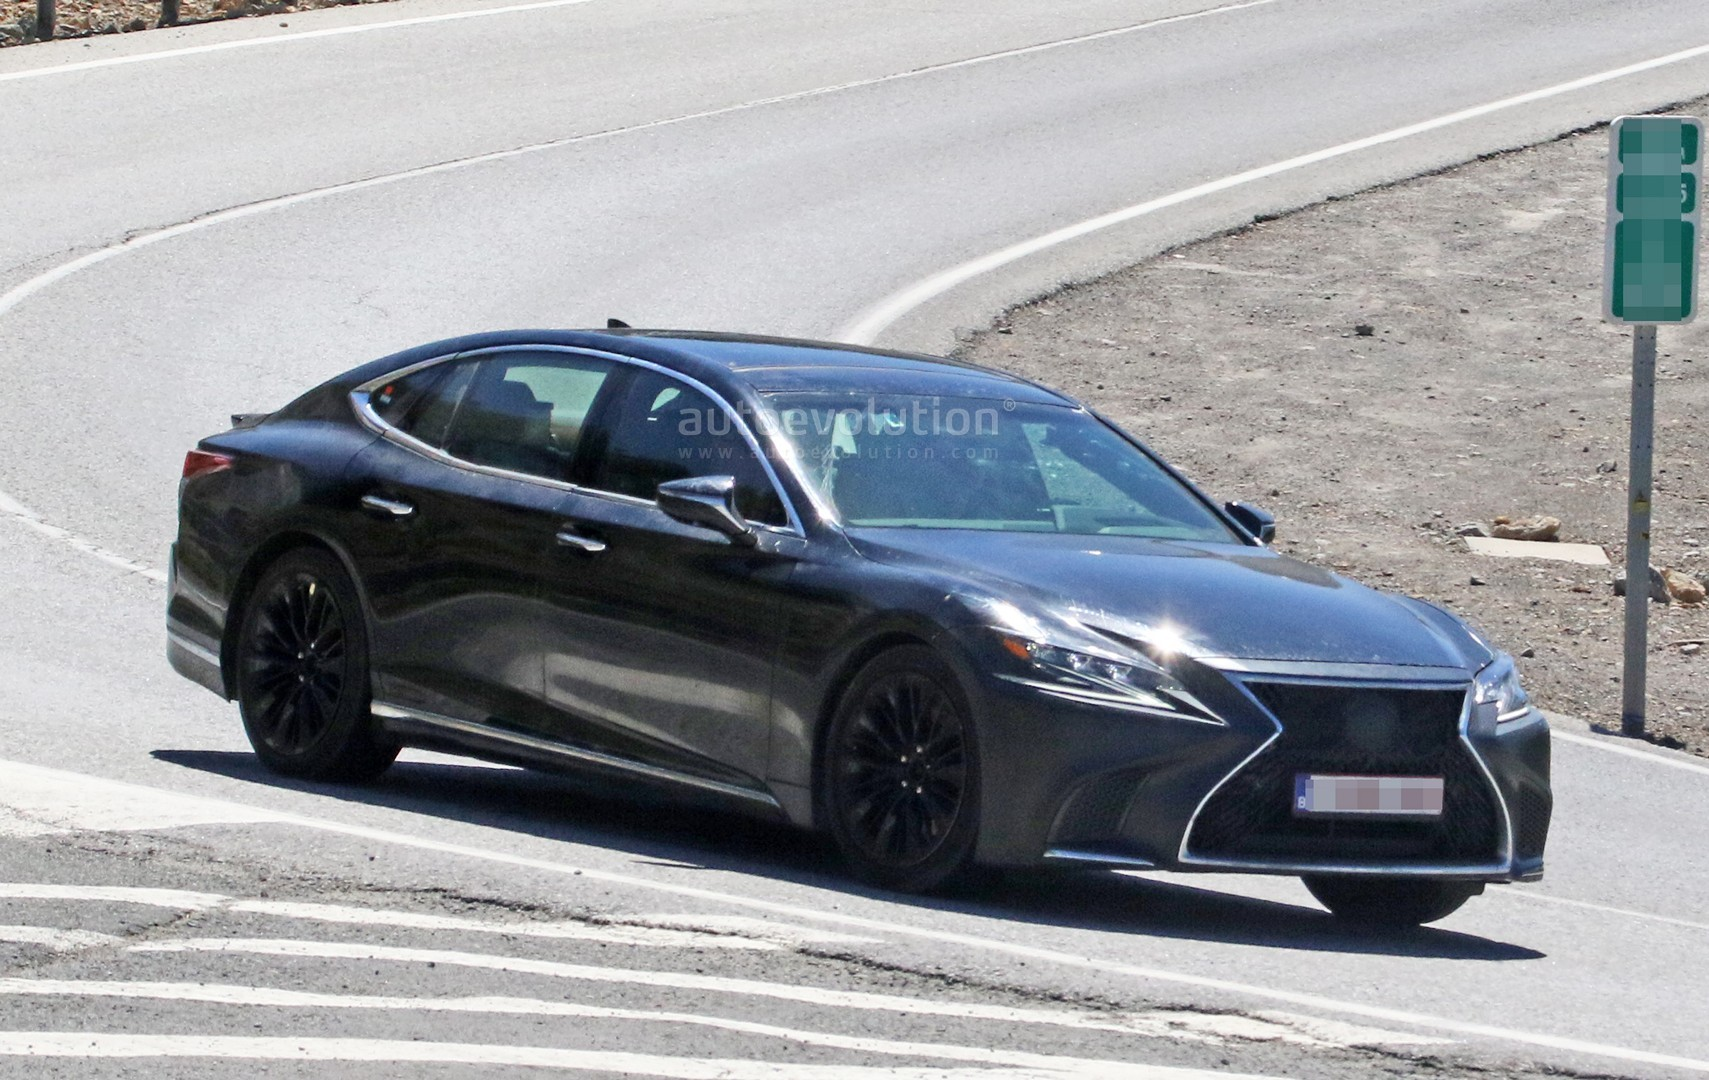 Beautiful ... Spyshots: 2019 Lexus LS F Spotted, Could Pack Twin Turbo V8 ...